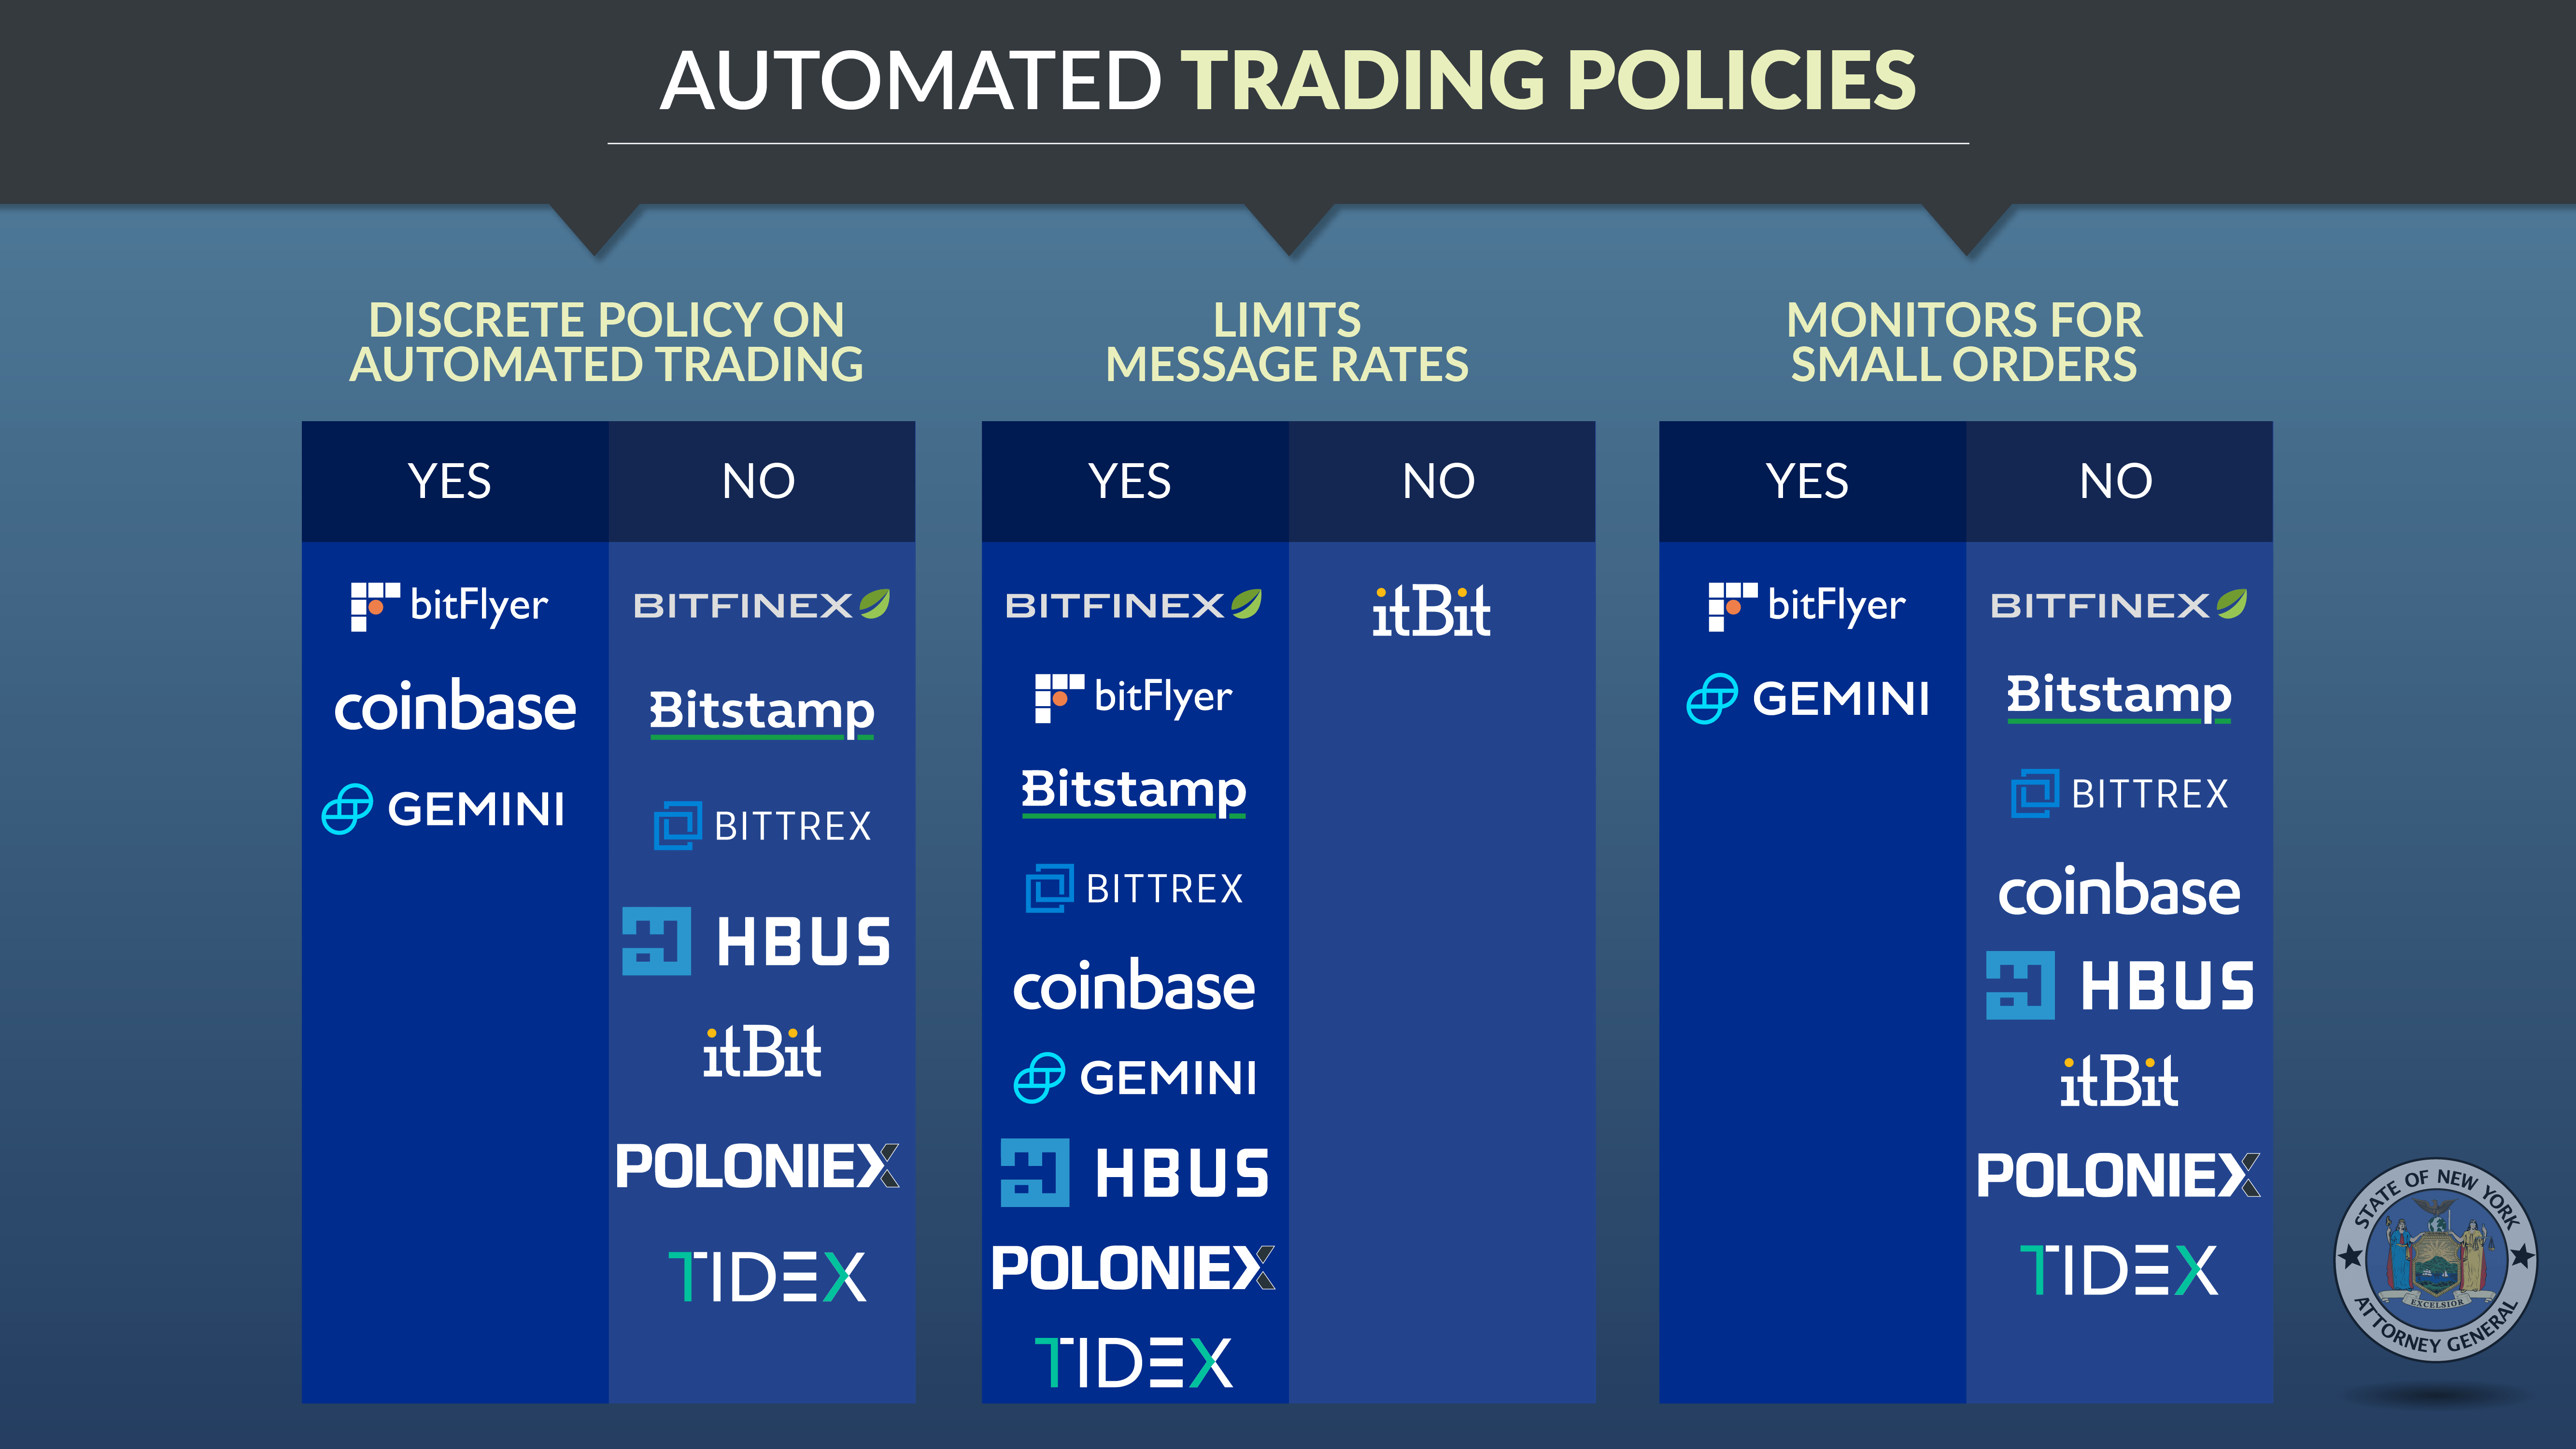 Automated Trading Policies